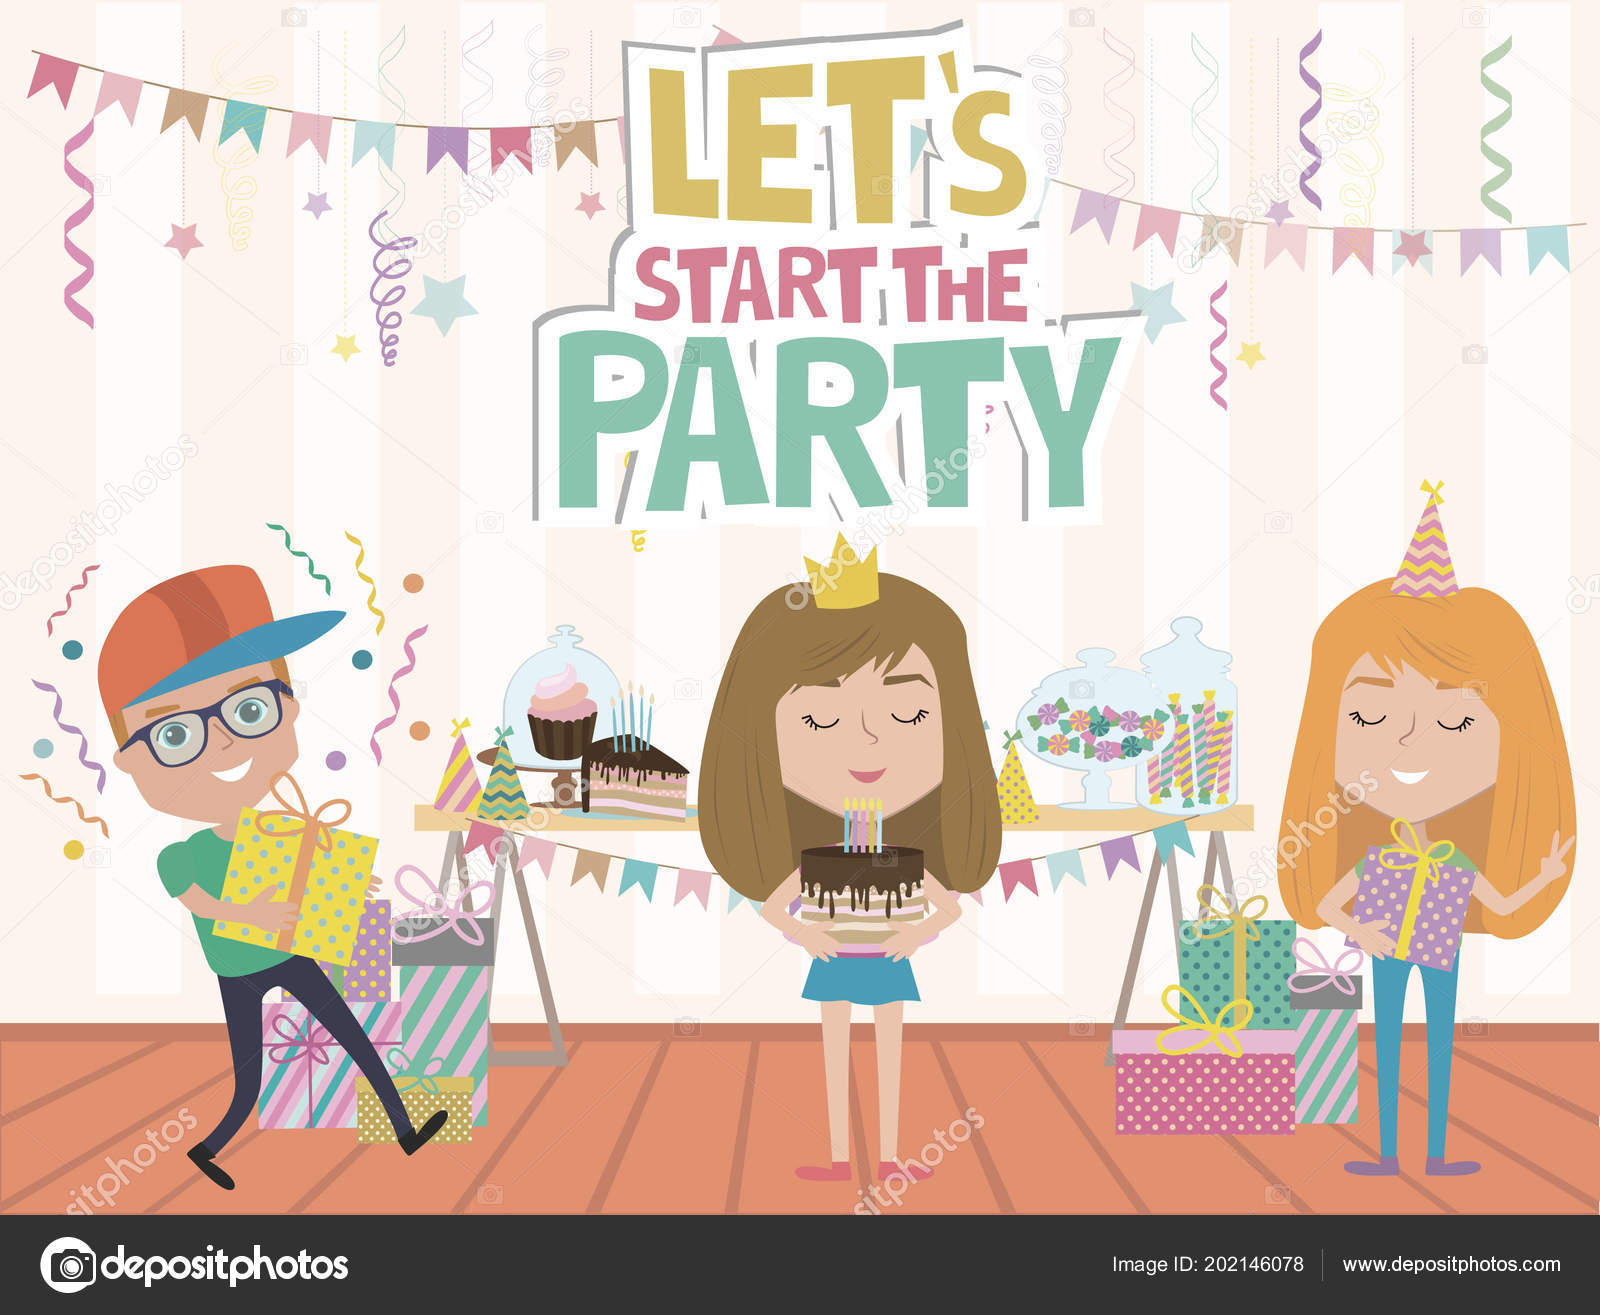 Kids Party Poster Fun Cartoon Characters Invitation Greeting